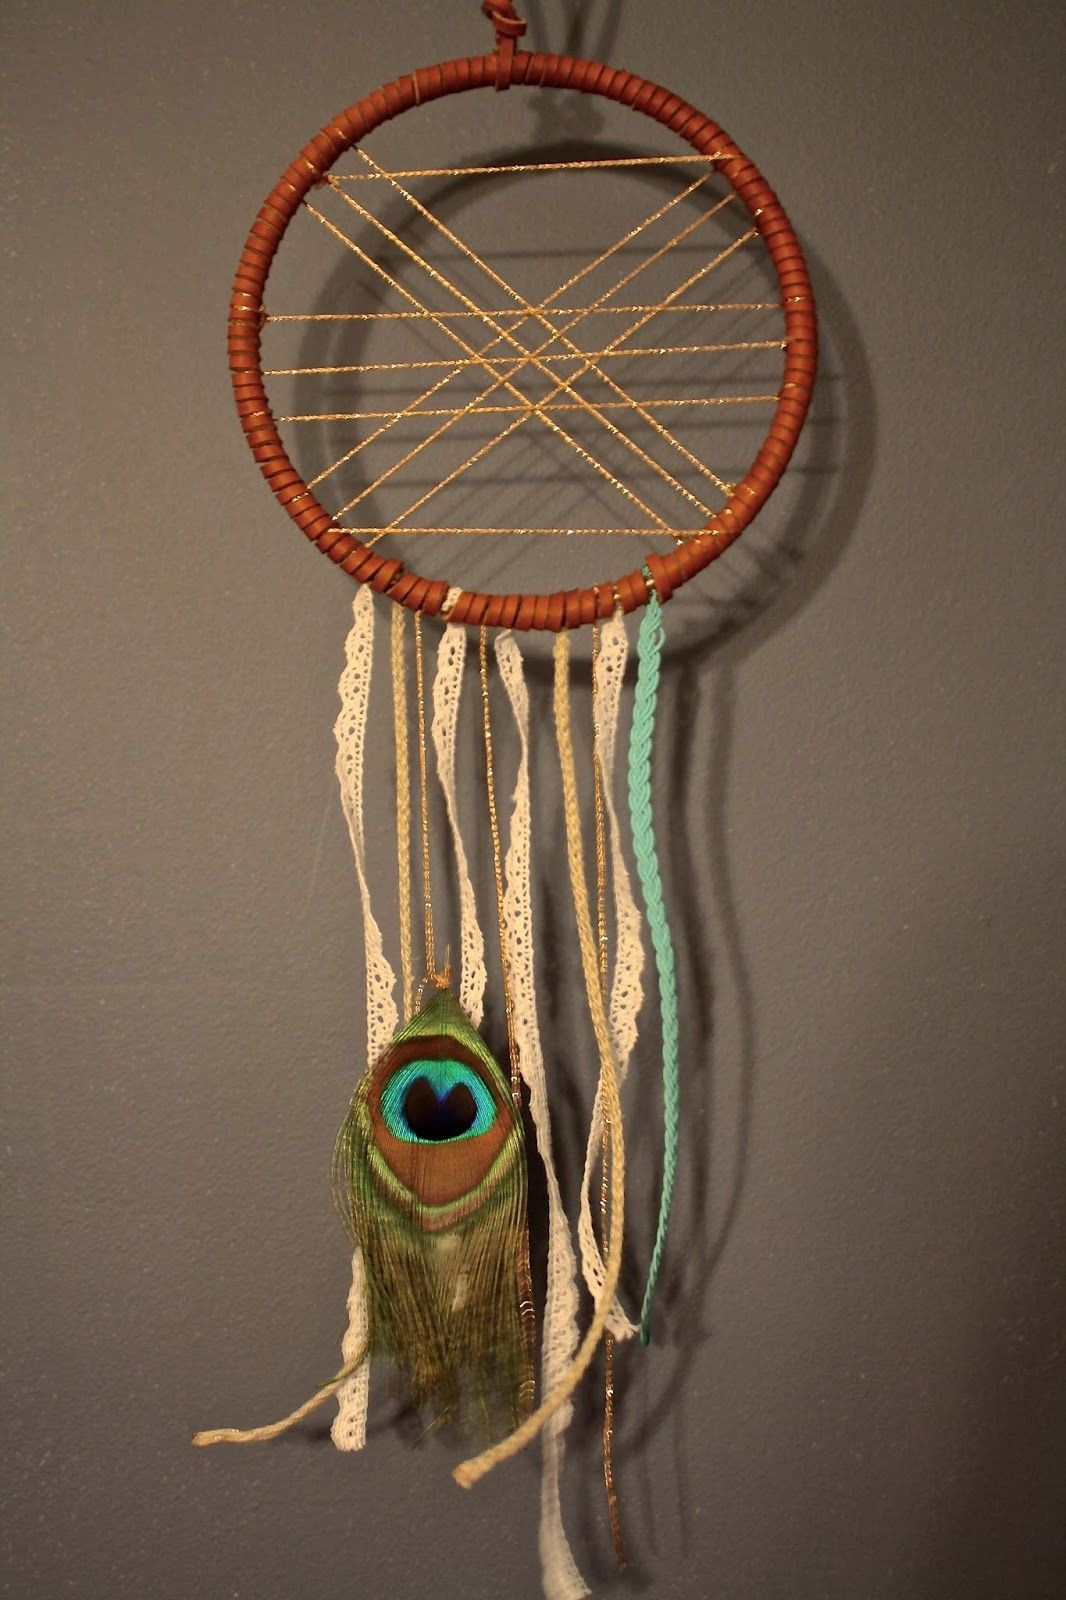 Best ideas about DIY Dream Catchers . Save or Pin Pin by Kyla Pelletier on DIY crafts Now.